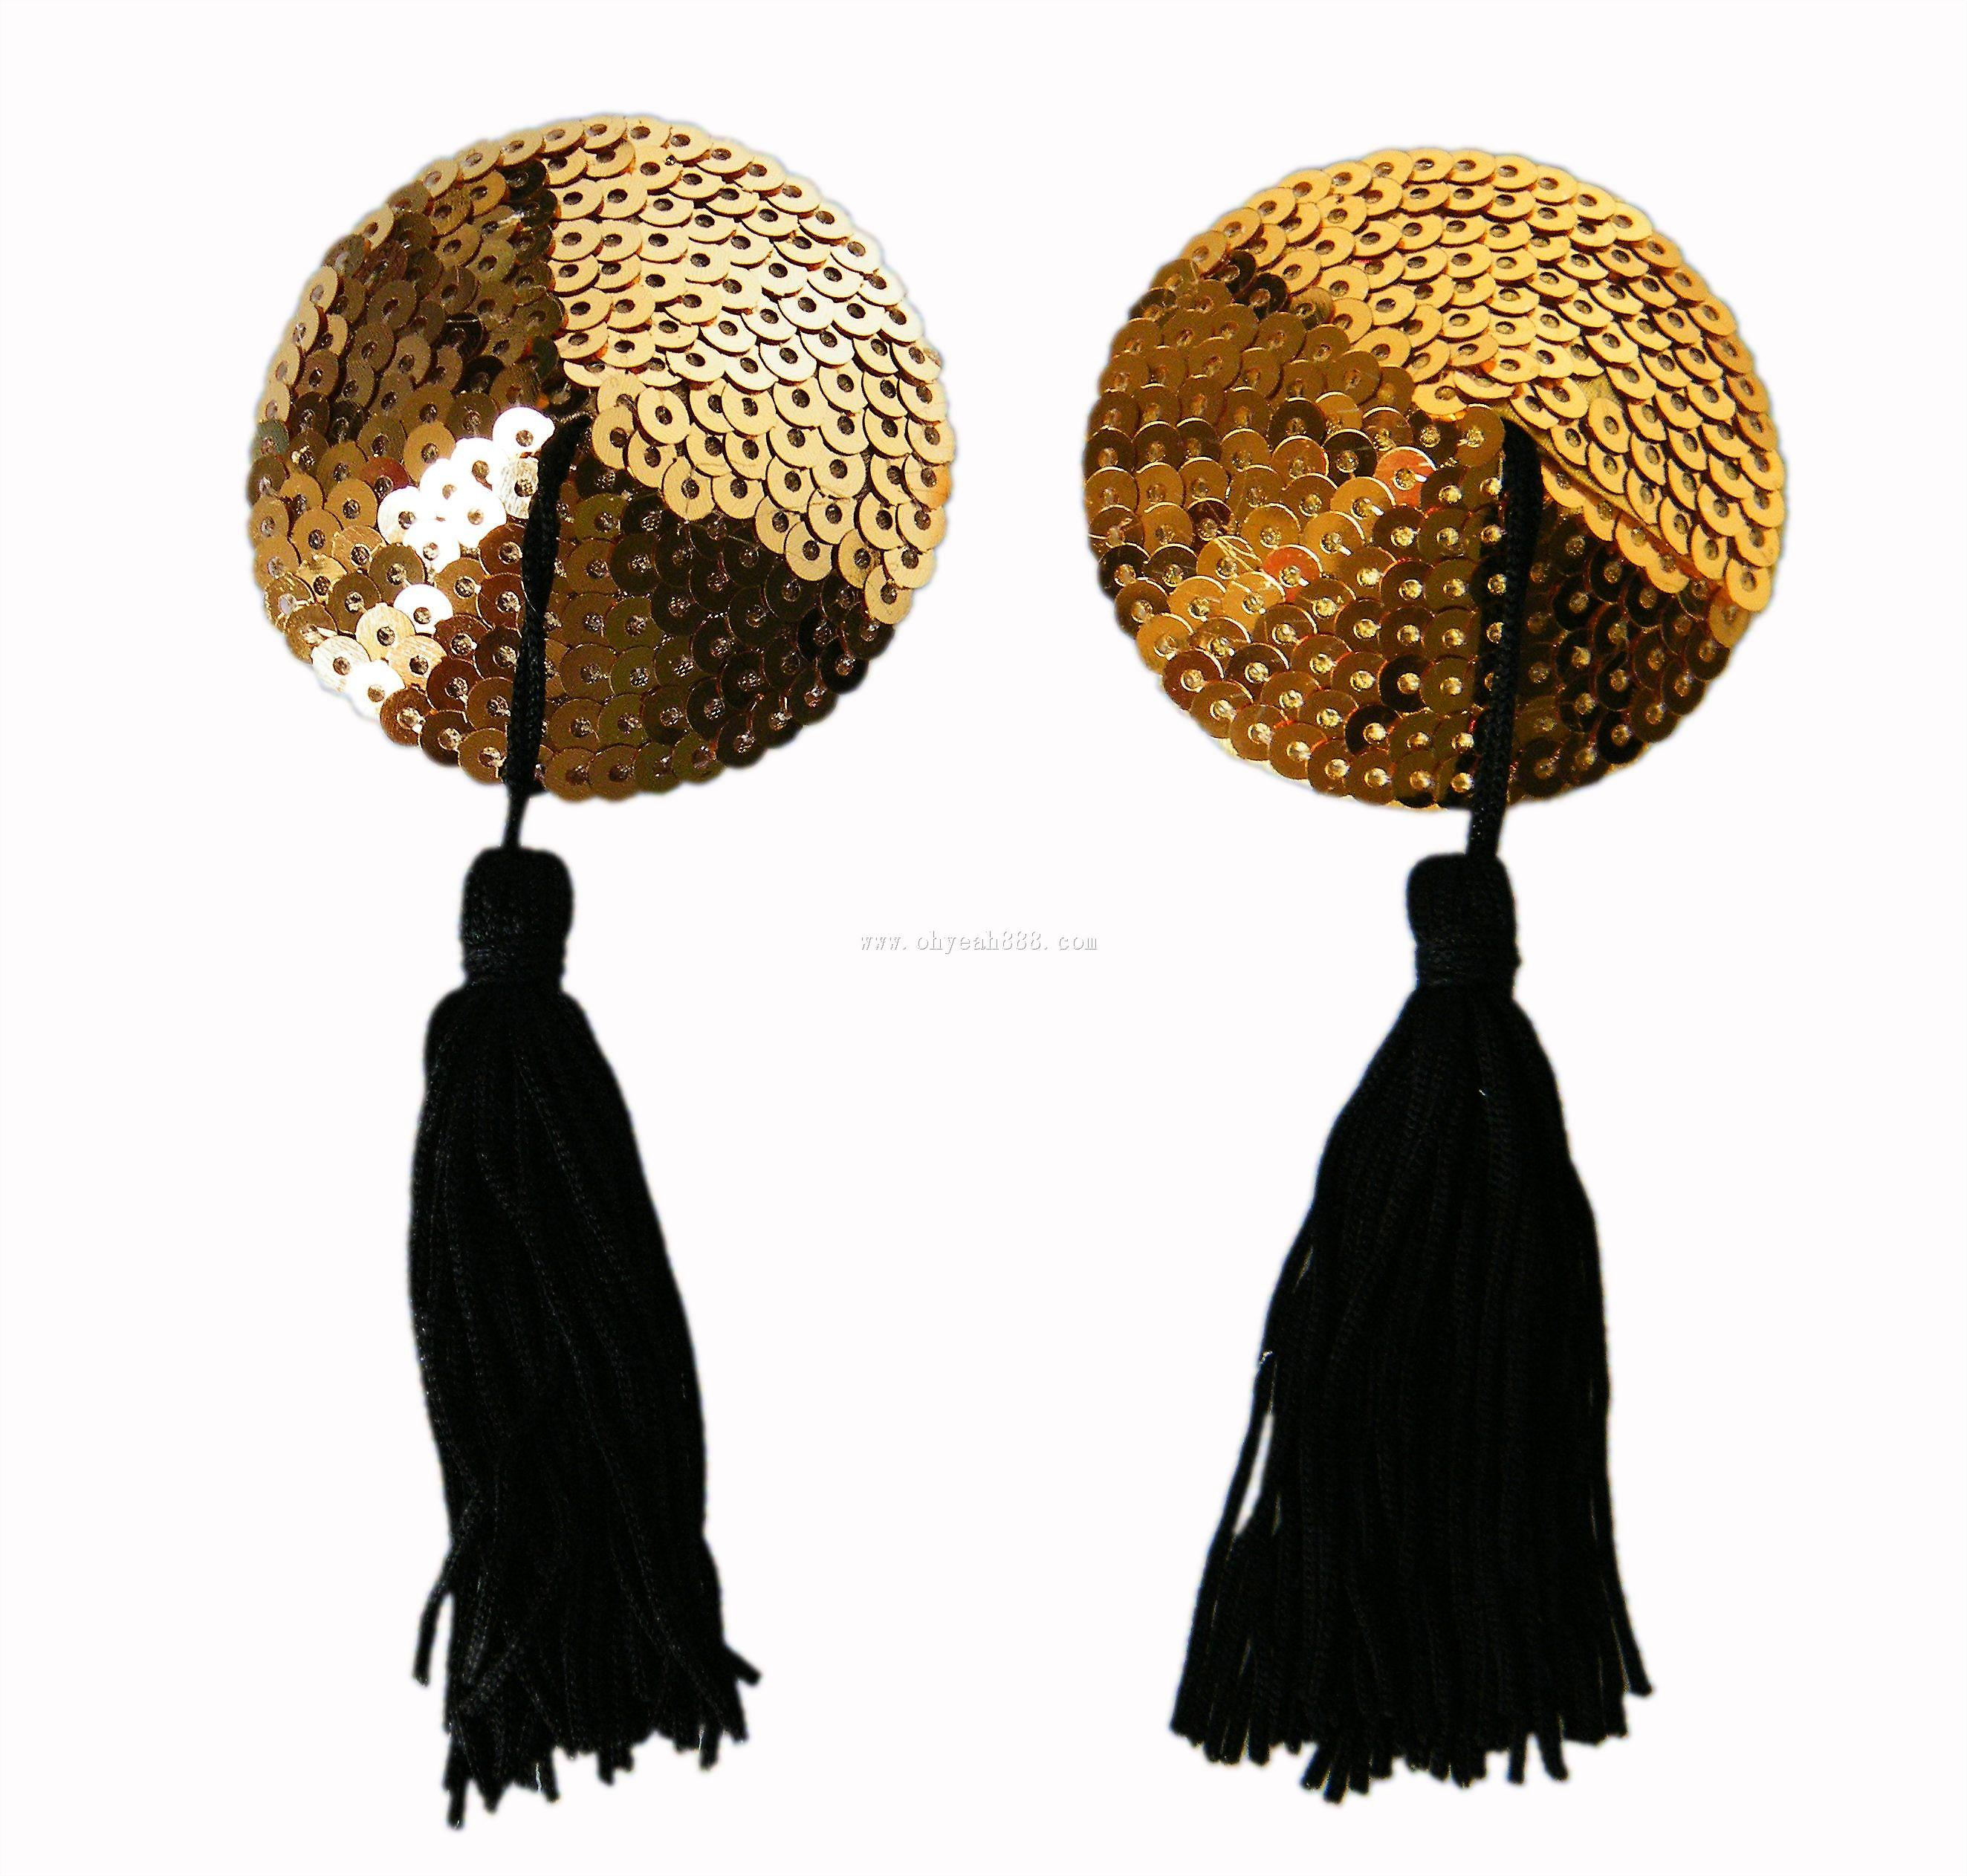 Waooh 69 - Nippies Nipple Cover Tassel Sequins And Gold